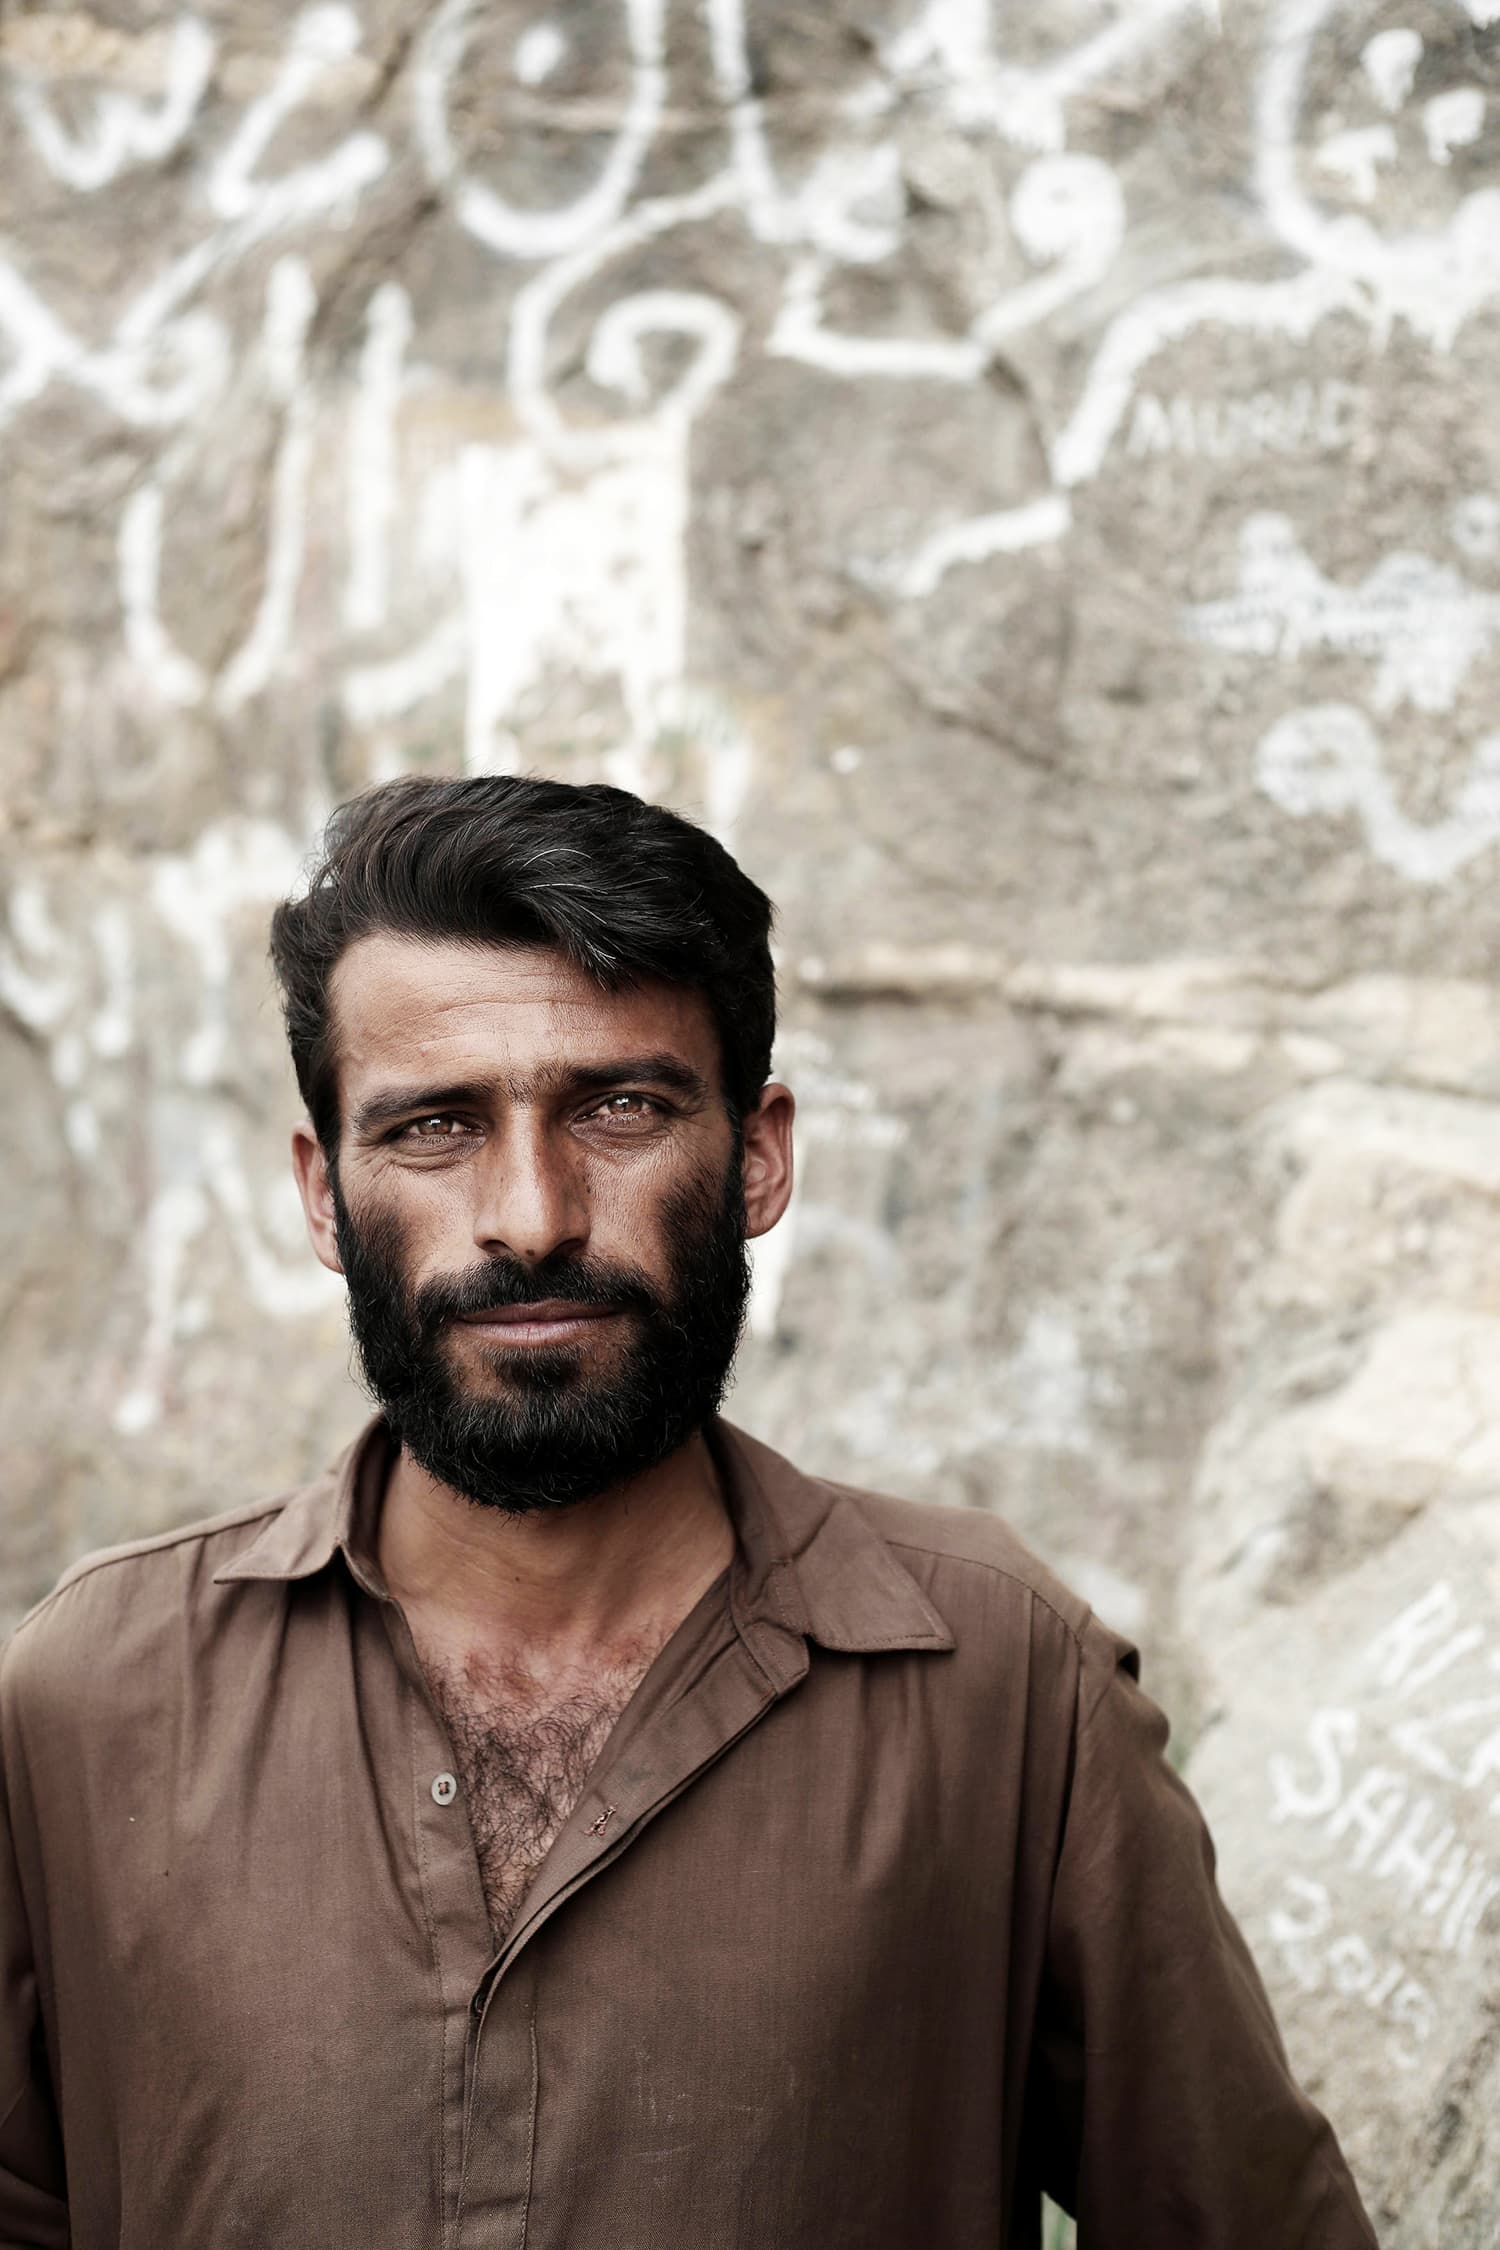 Sobdar Khan, 35, a Pakistani from Karachi poses for a portrait on Noor Mountain.— AP